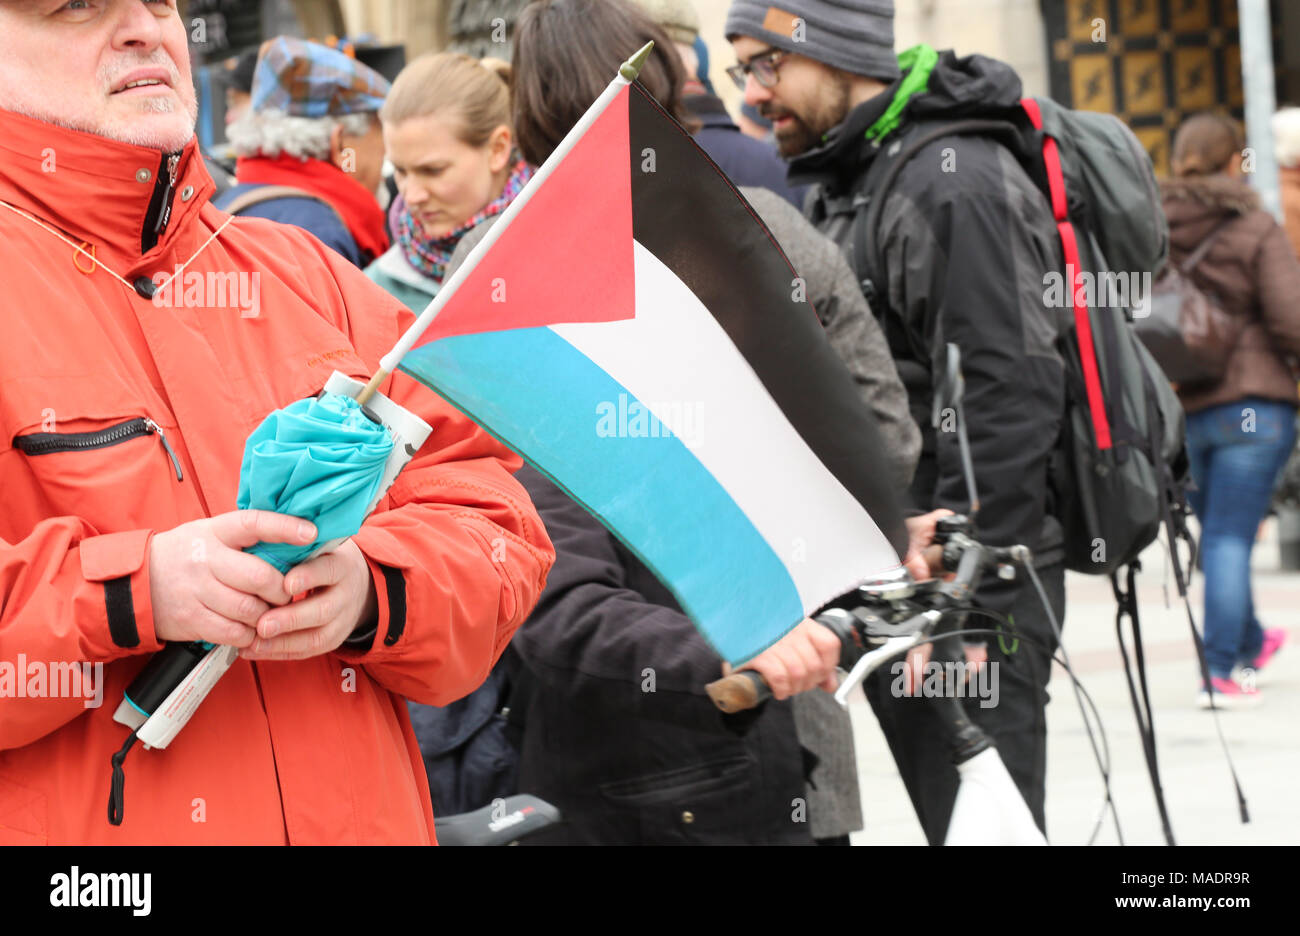 Munich, Germany. 31st Mar, 2018. A man with a Palestinian flag. Some thousand joined the Ostermarsch (easter march) for peace and disarmament. The Ostermarsch is a traditional peace demonstration, which is held yearly in hundreds of German towns. Credit: Alexander Pohl/Pacific Press/Alamy Live News Credit: PACIFIC PRESS/Alamy Live News - Stock Image